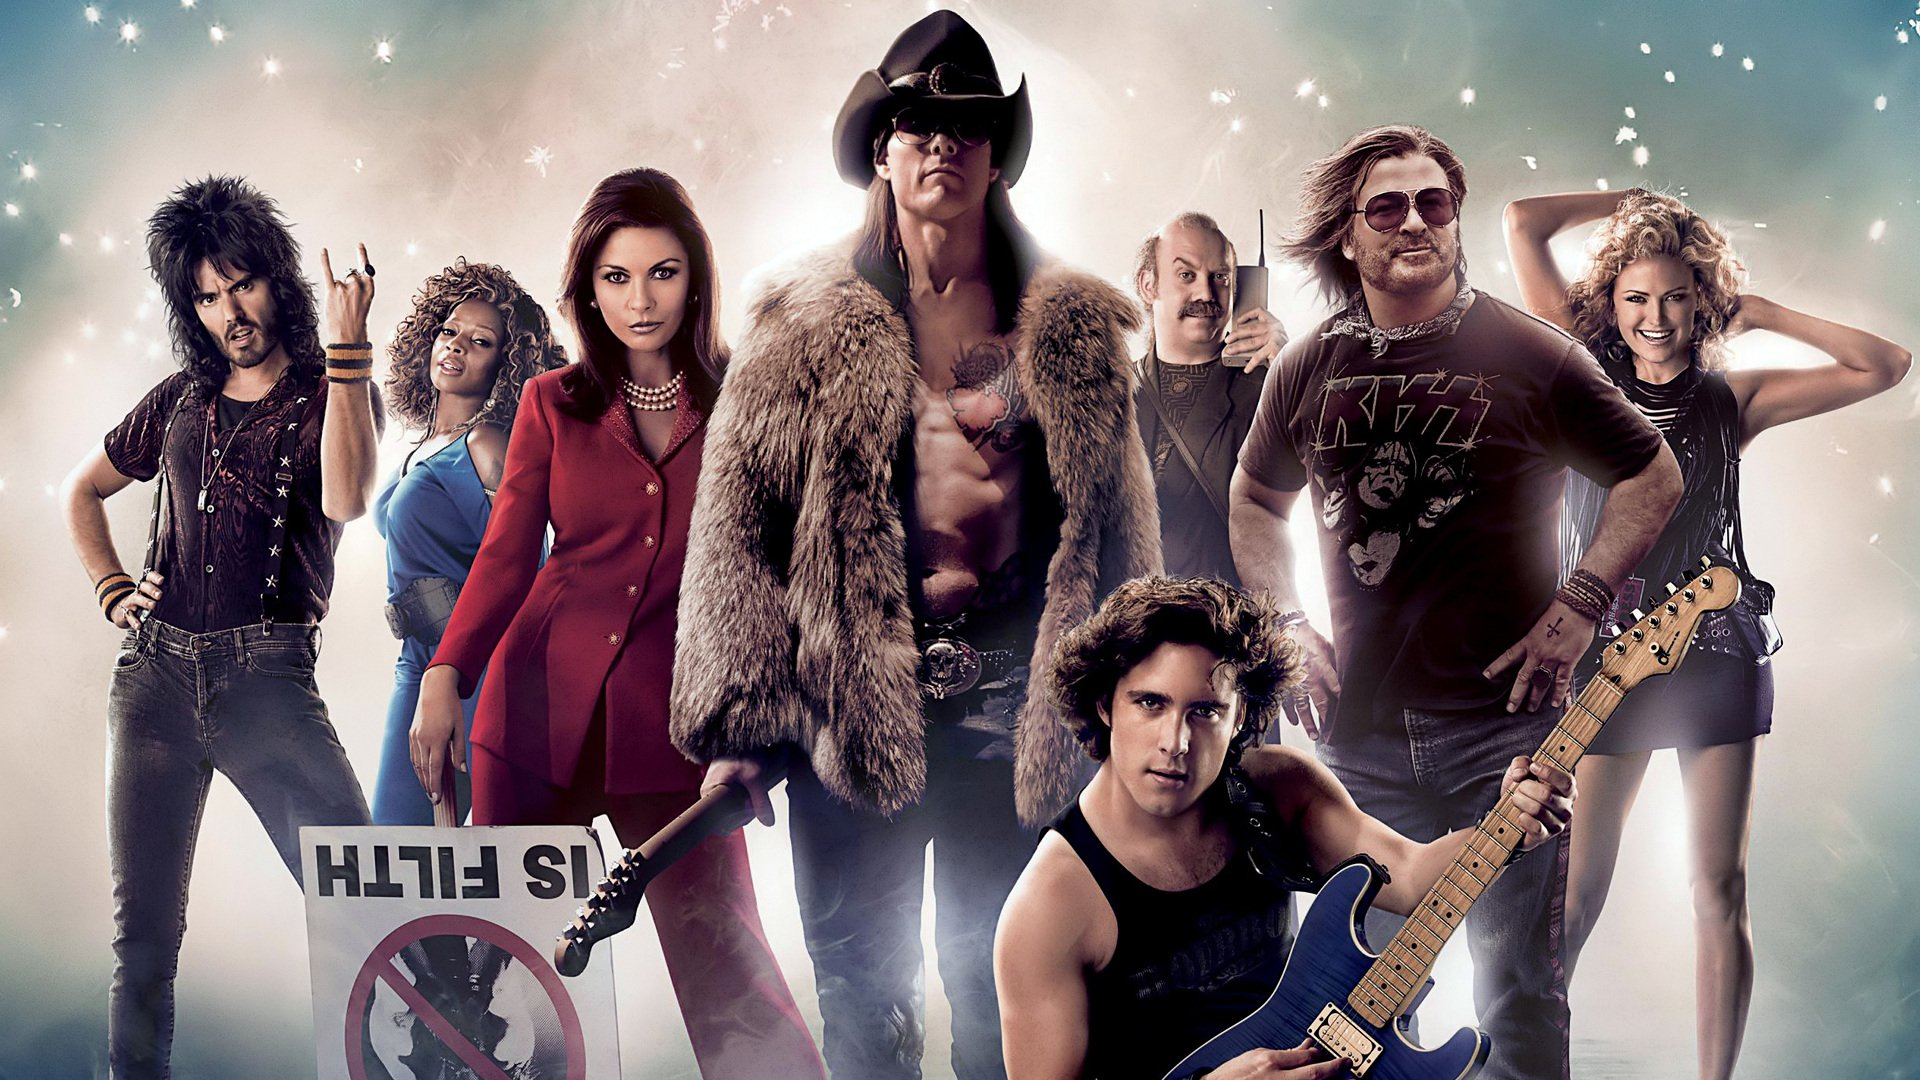 21 rock of ages hd wallpapers | background images - wallpaper abyss